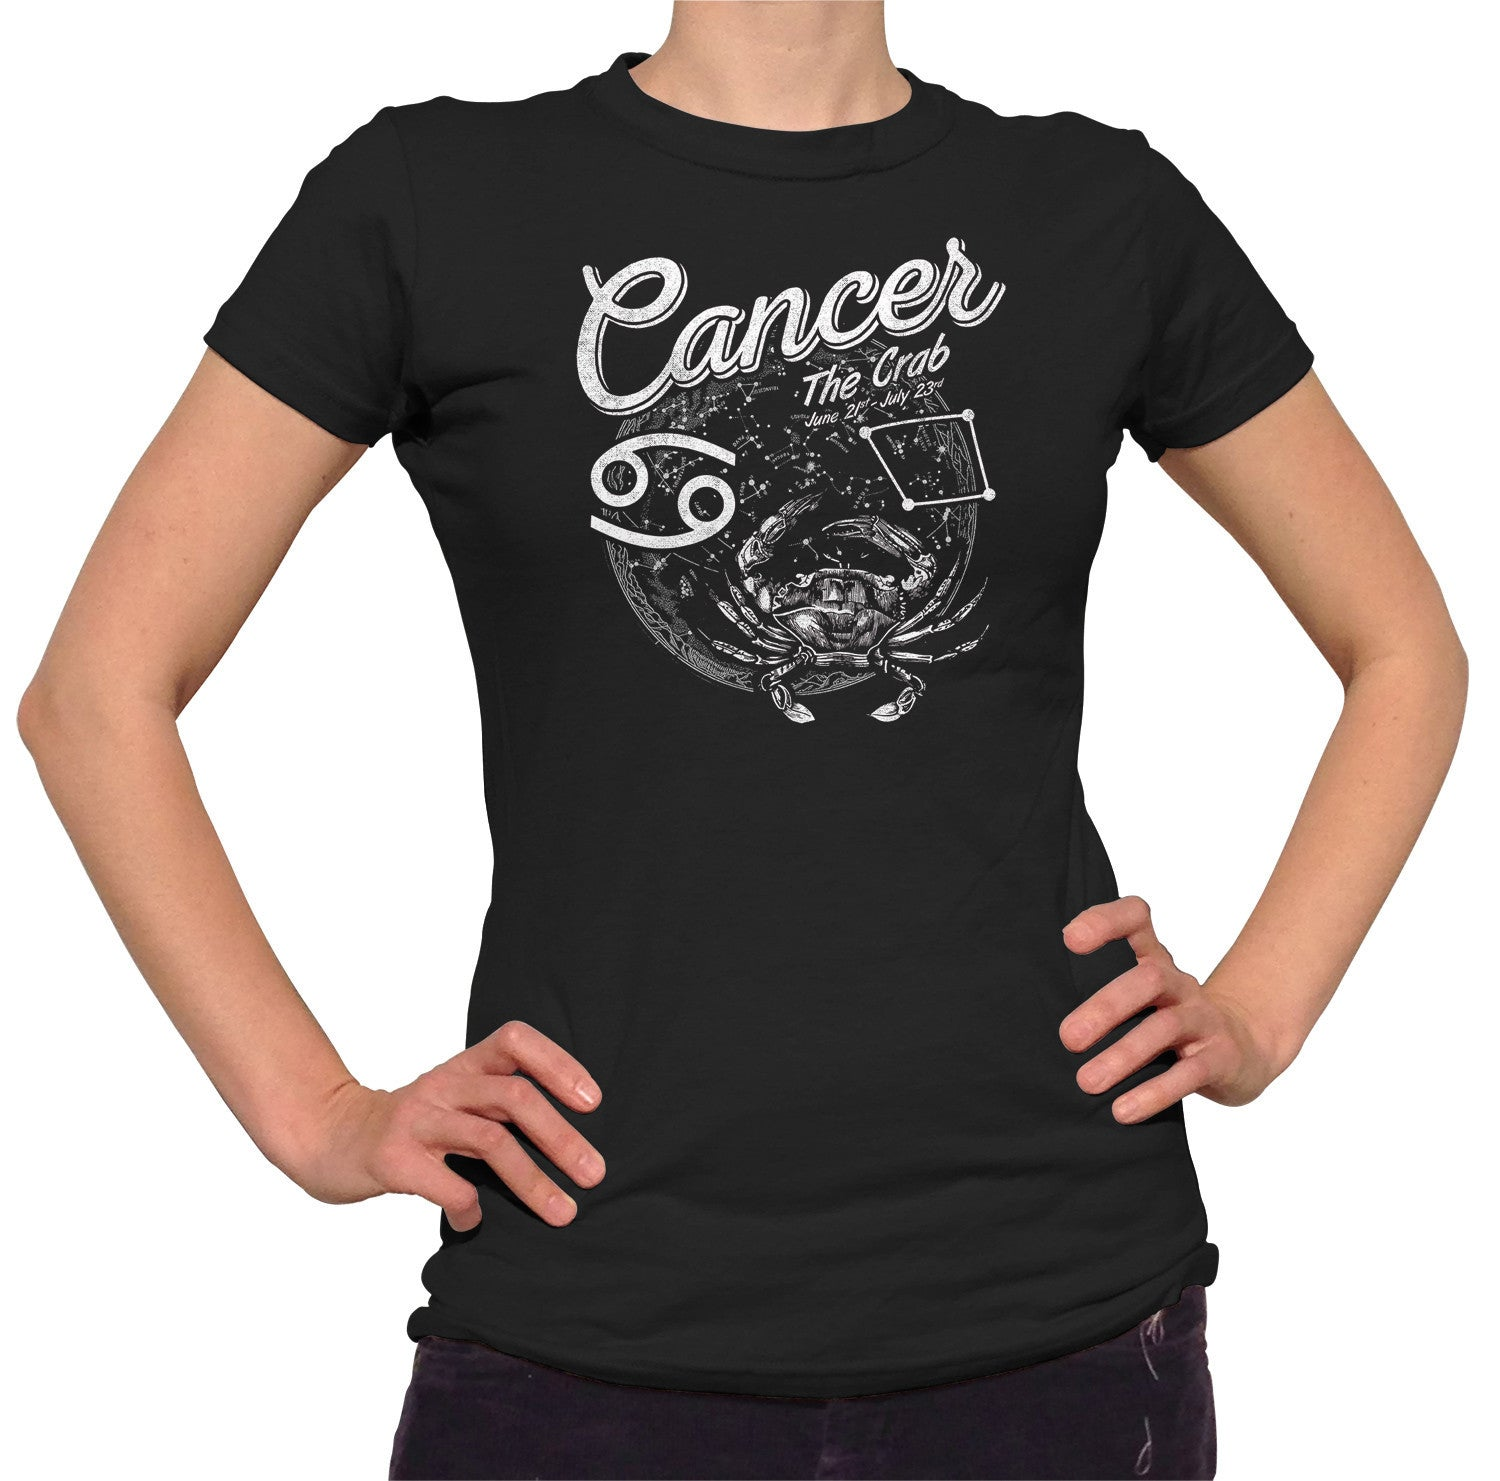 Women's Vintage Cancer T-Shirt